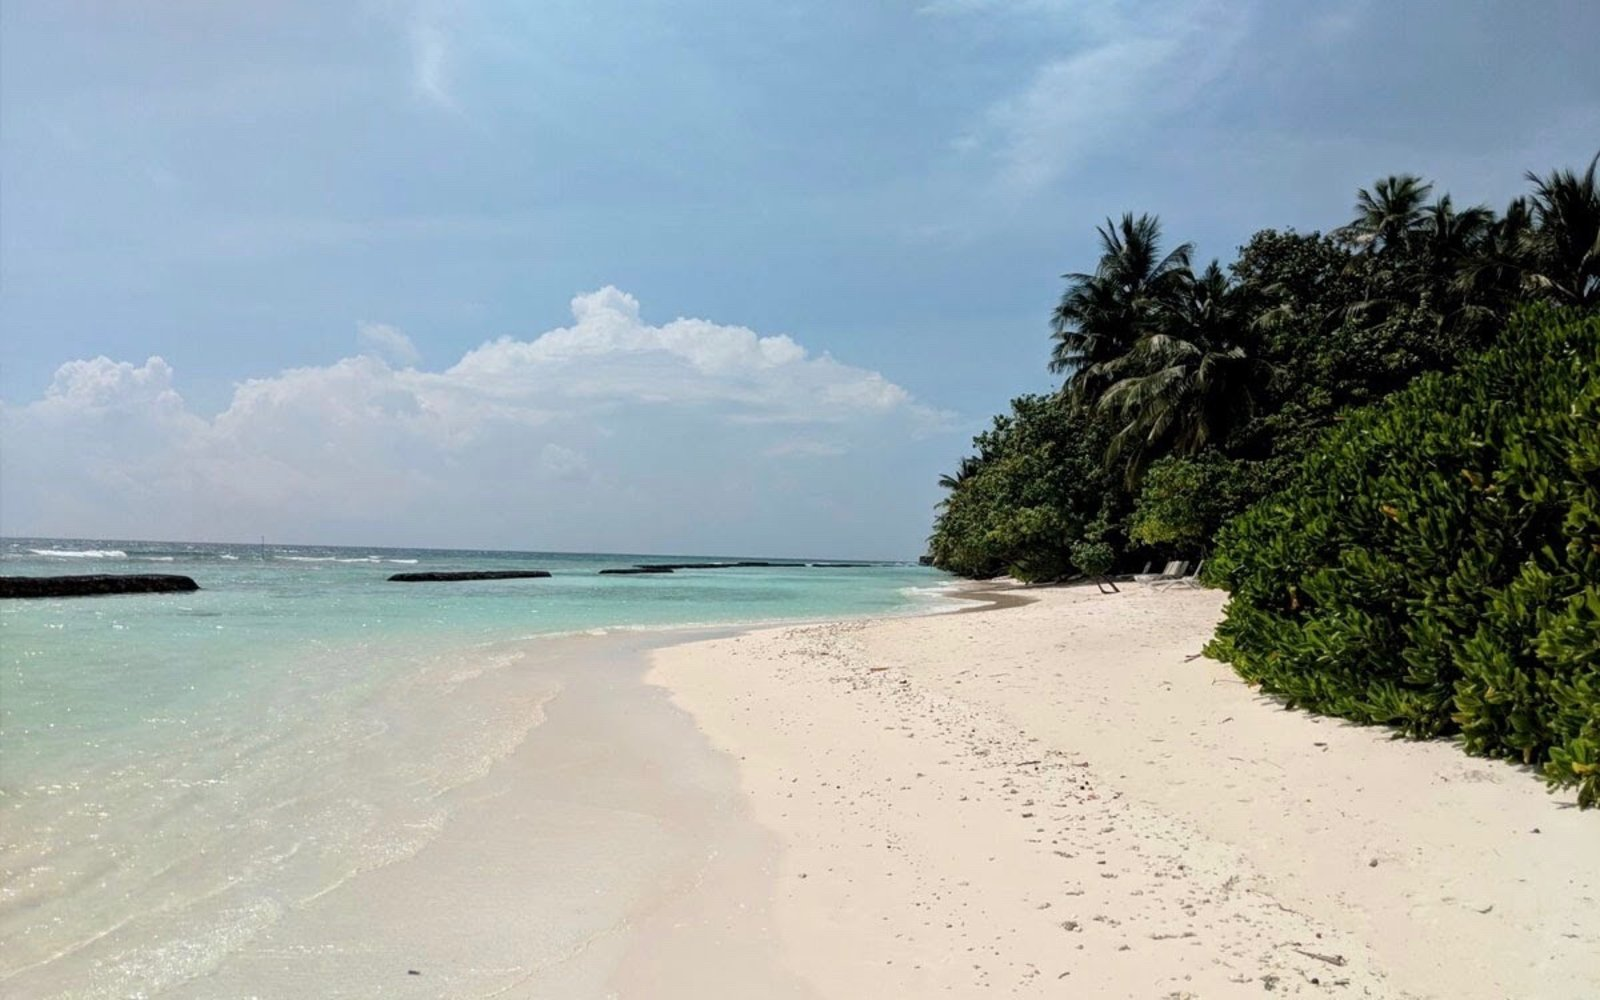 Maldives for Soundscapes project by Orbitz